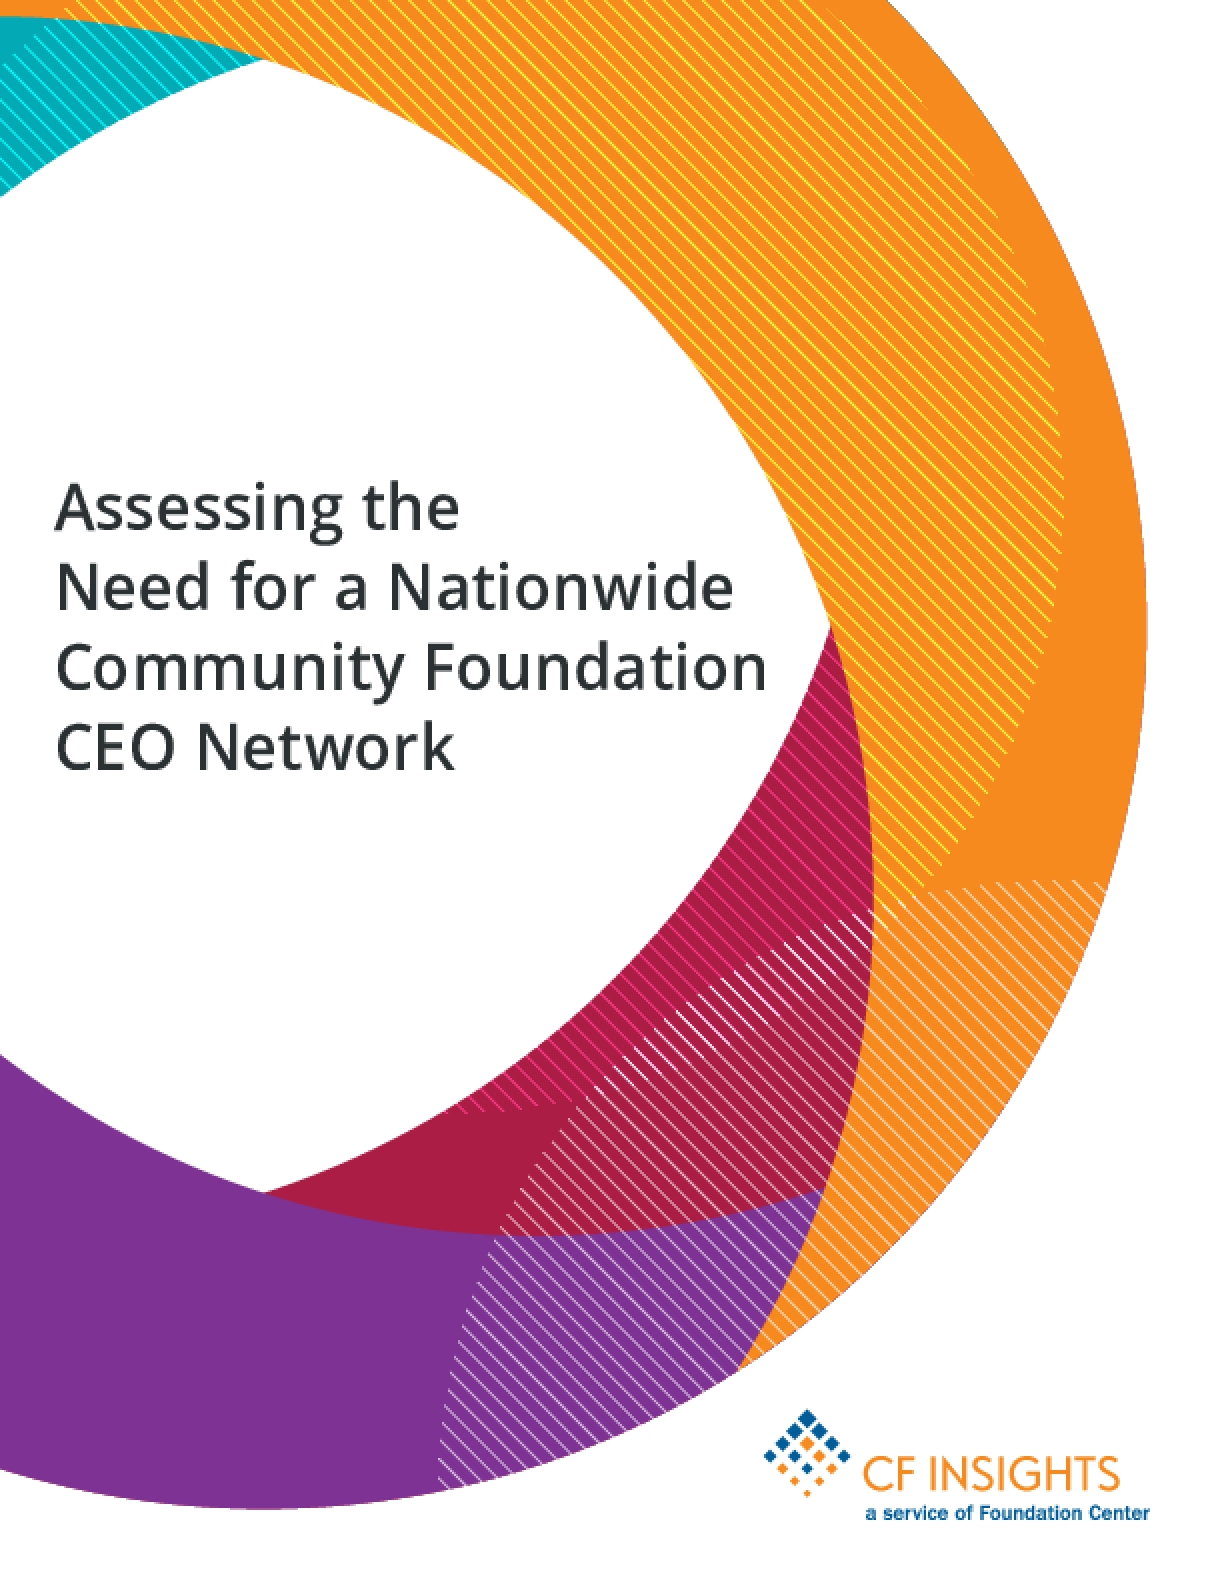 Assessing the Need for a Nationwide Community Foundation CEO Network